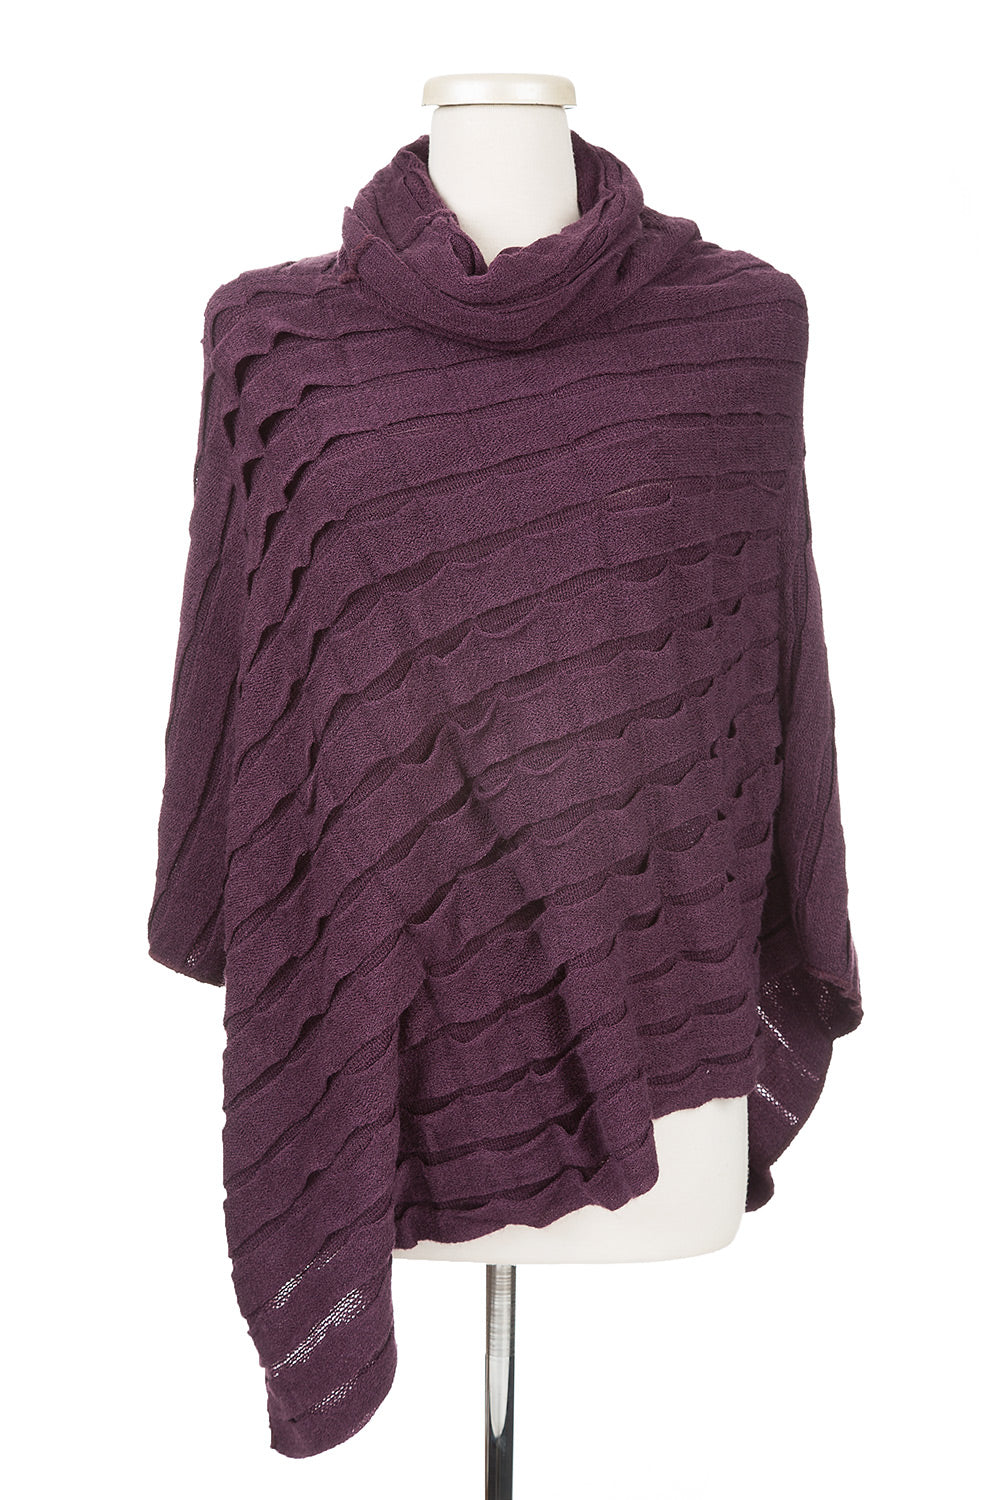 Type 2 Scalloped Poncho